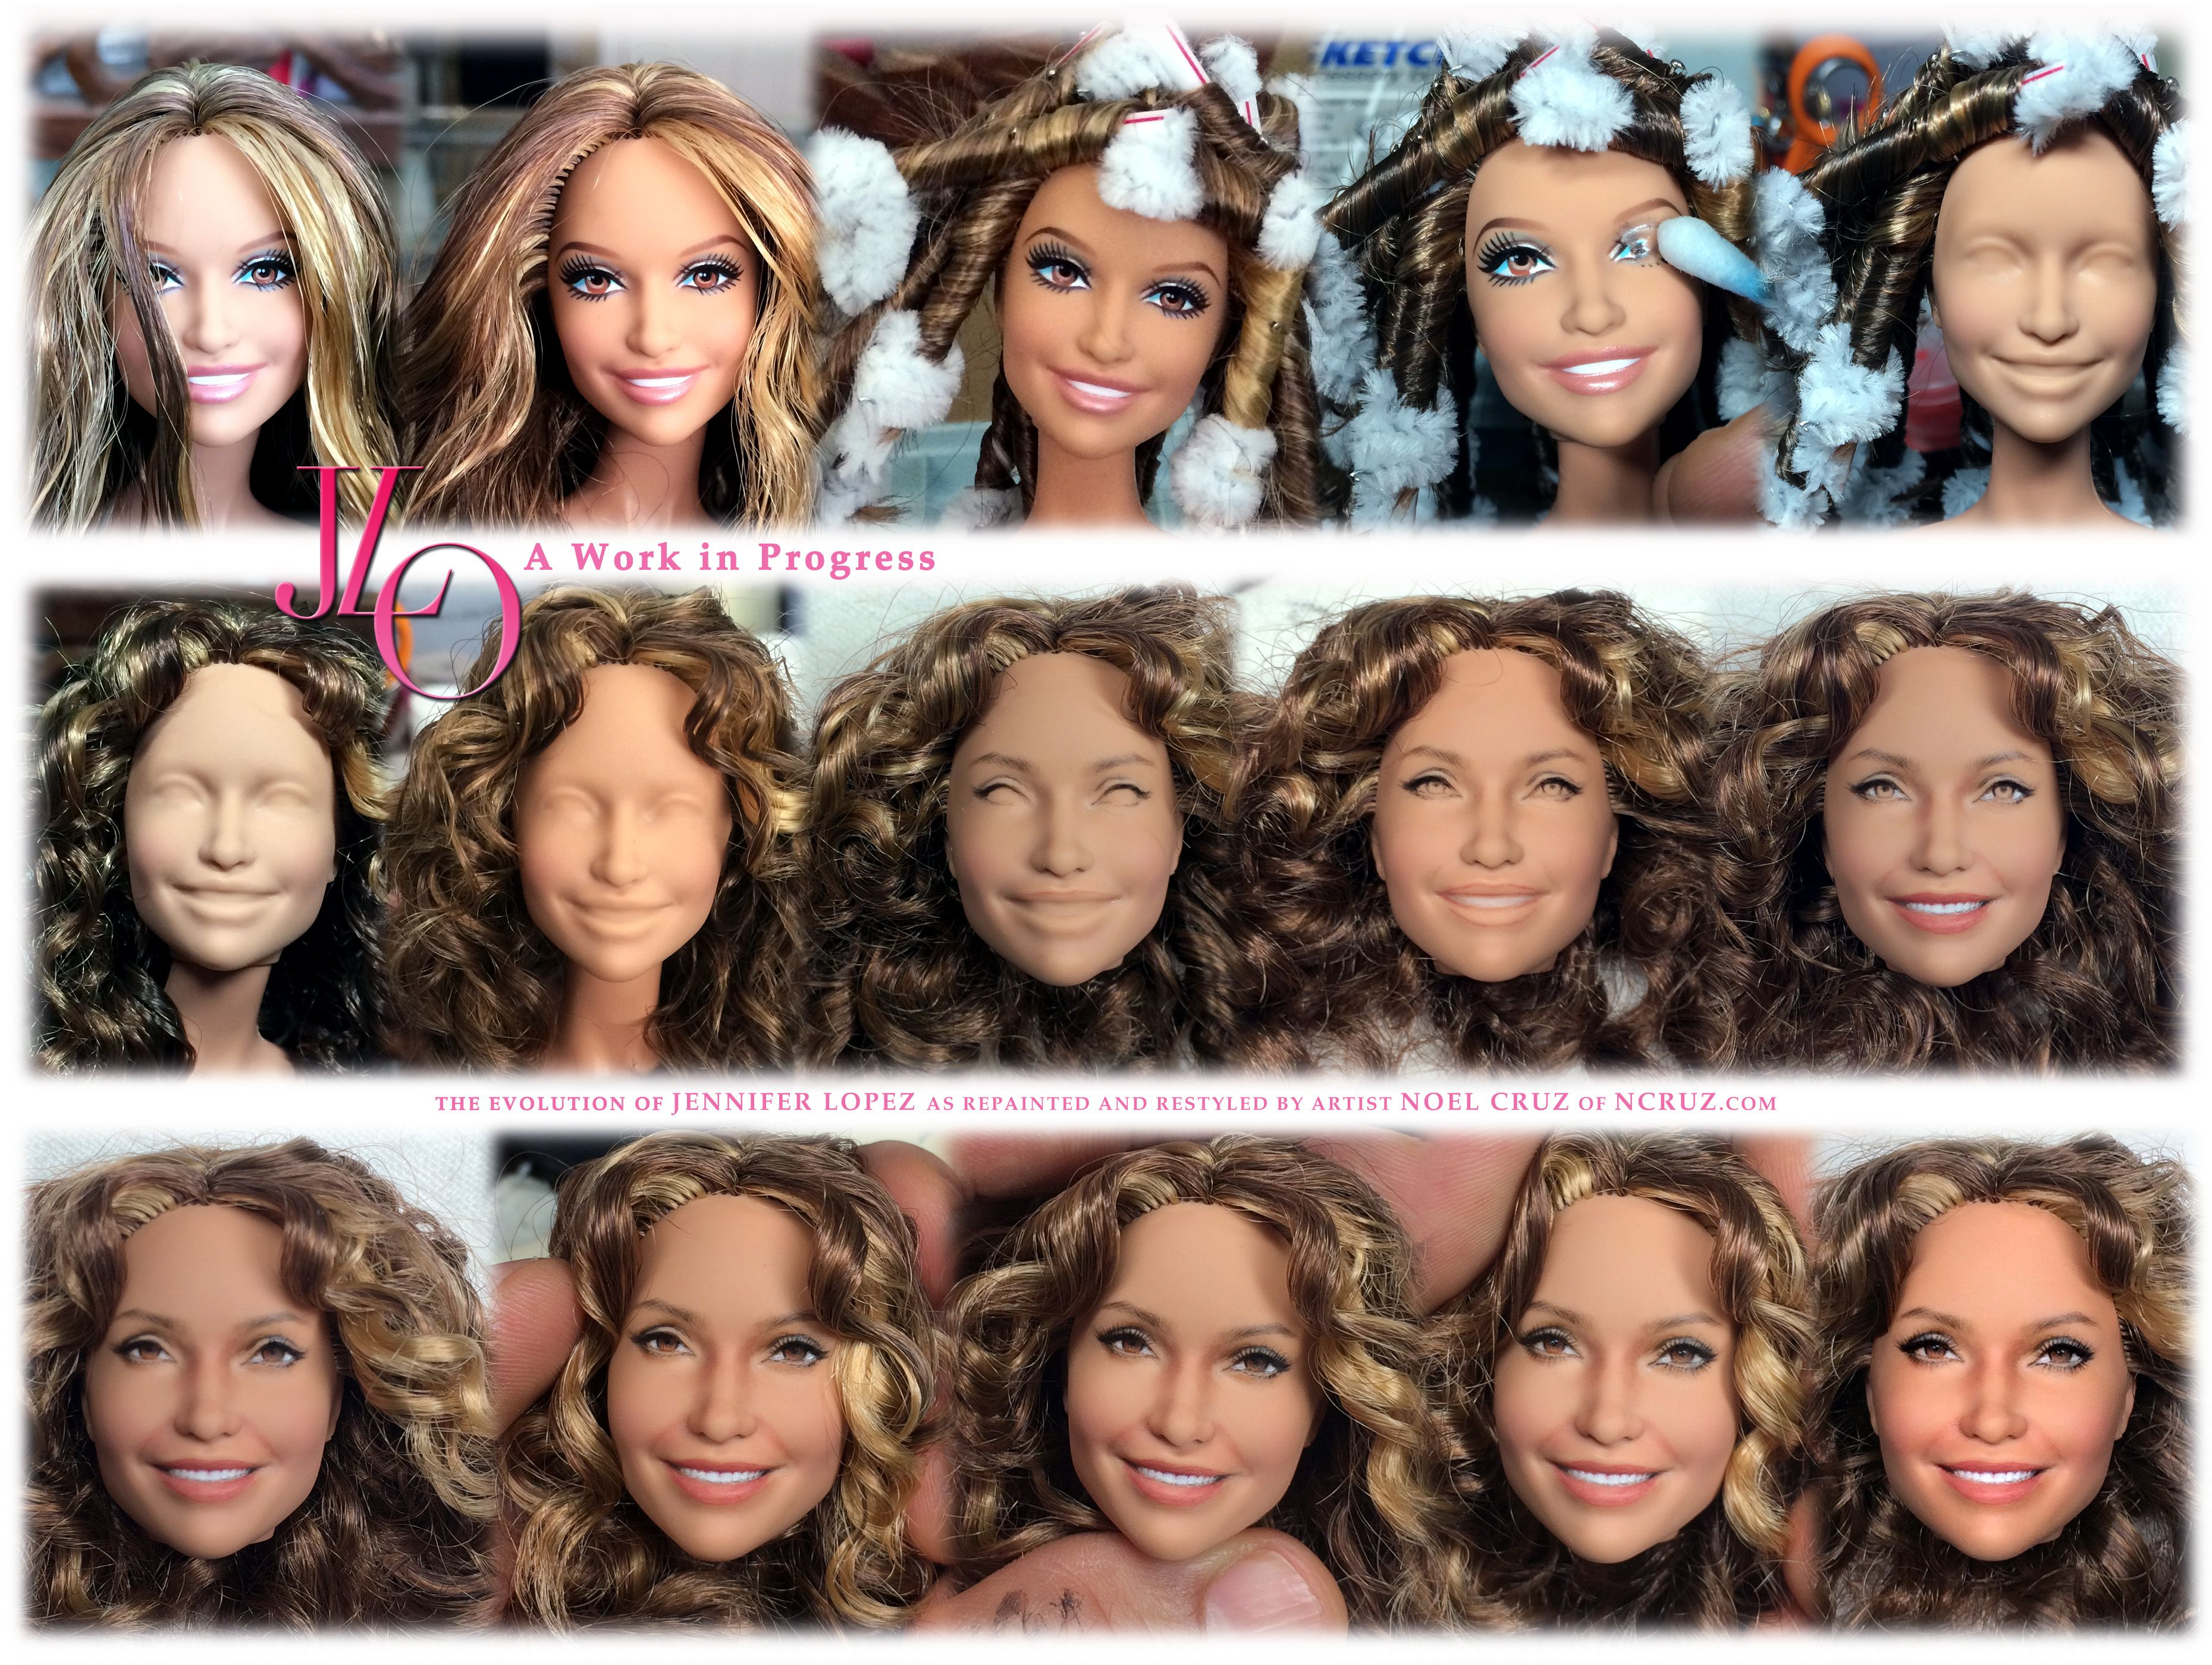 free step by step instructions on how to repaint barbie doll - Google Search